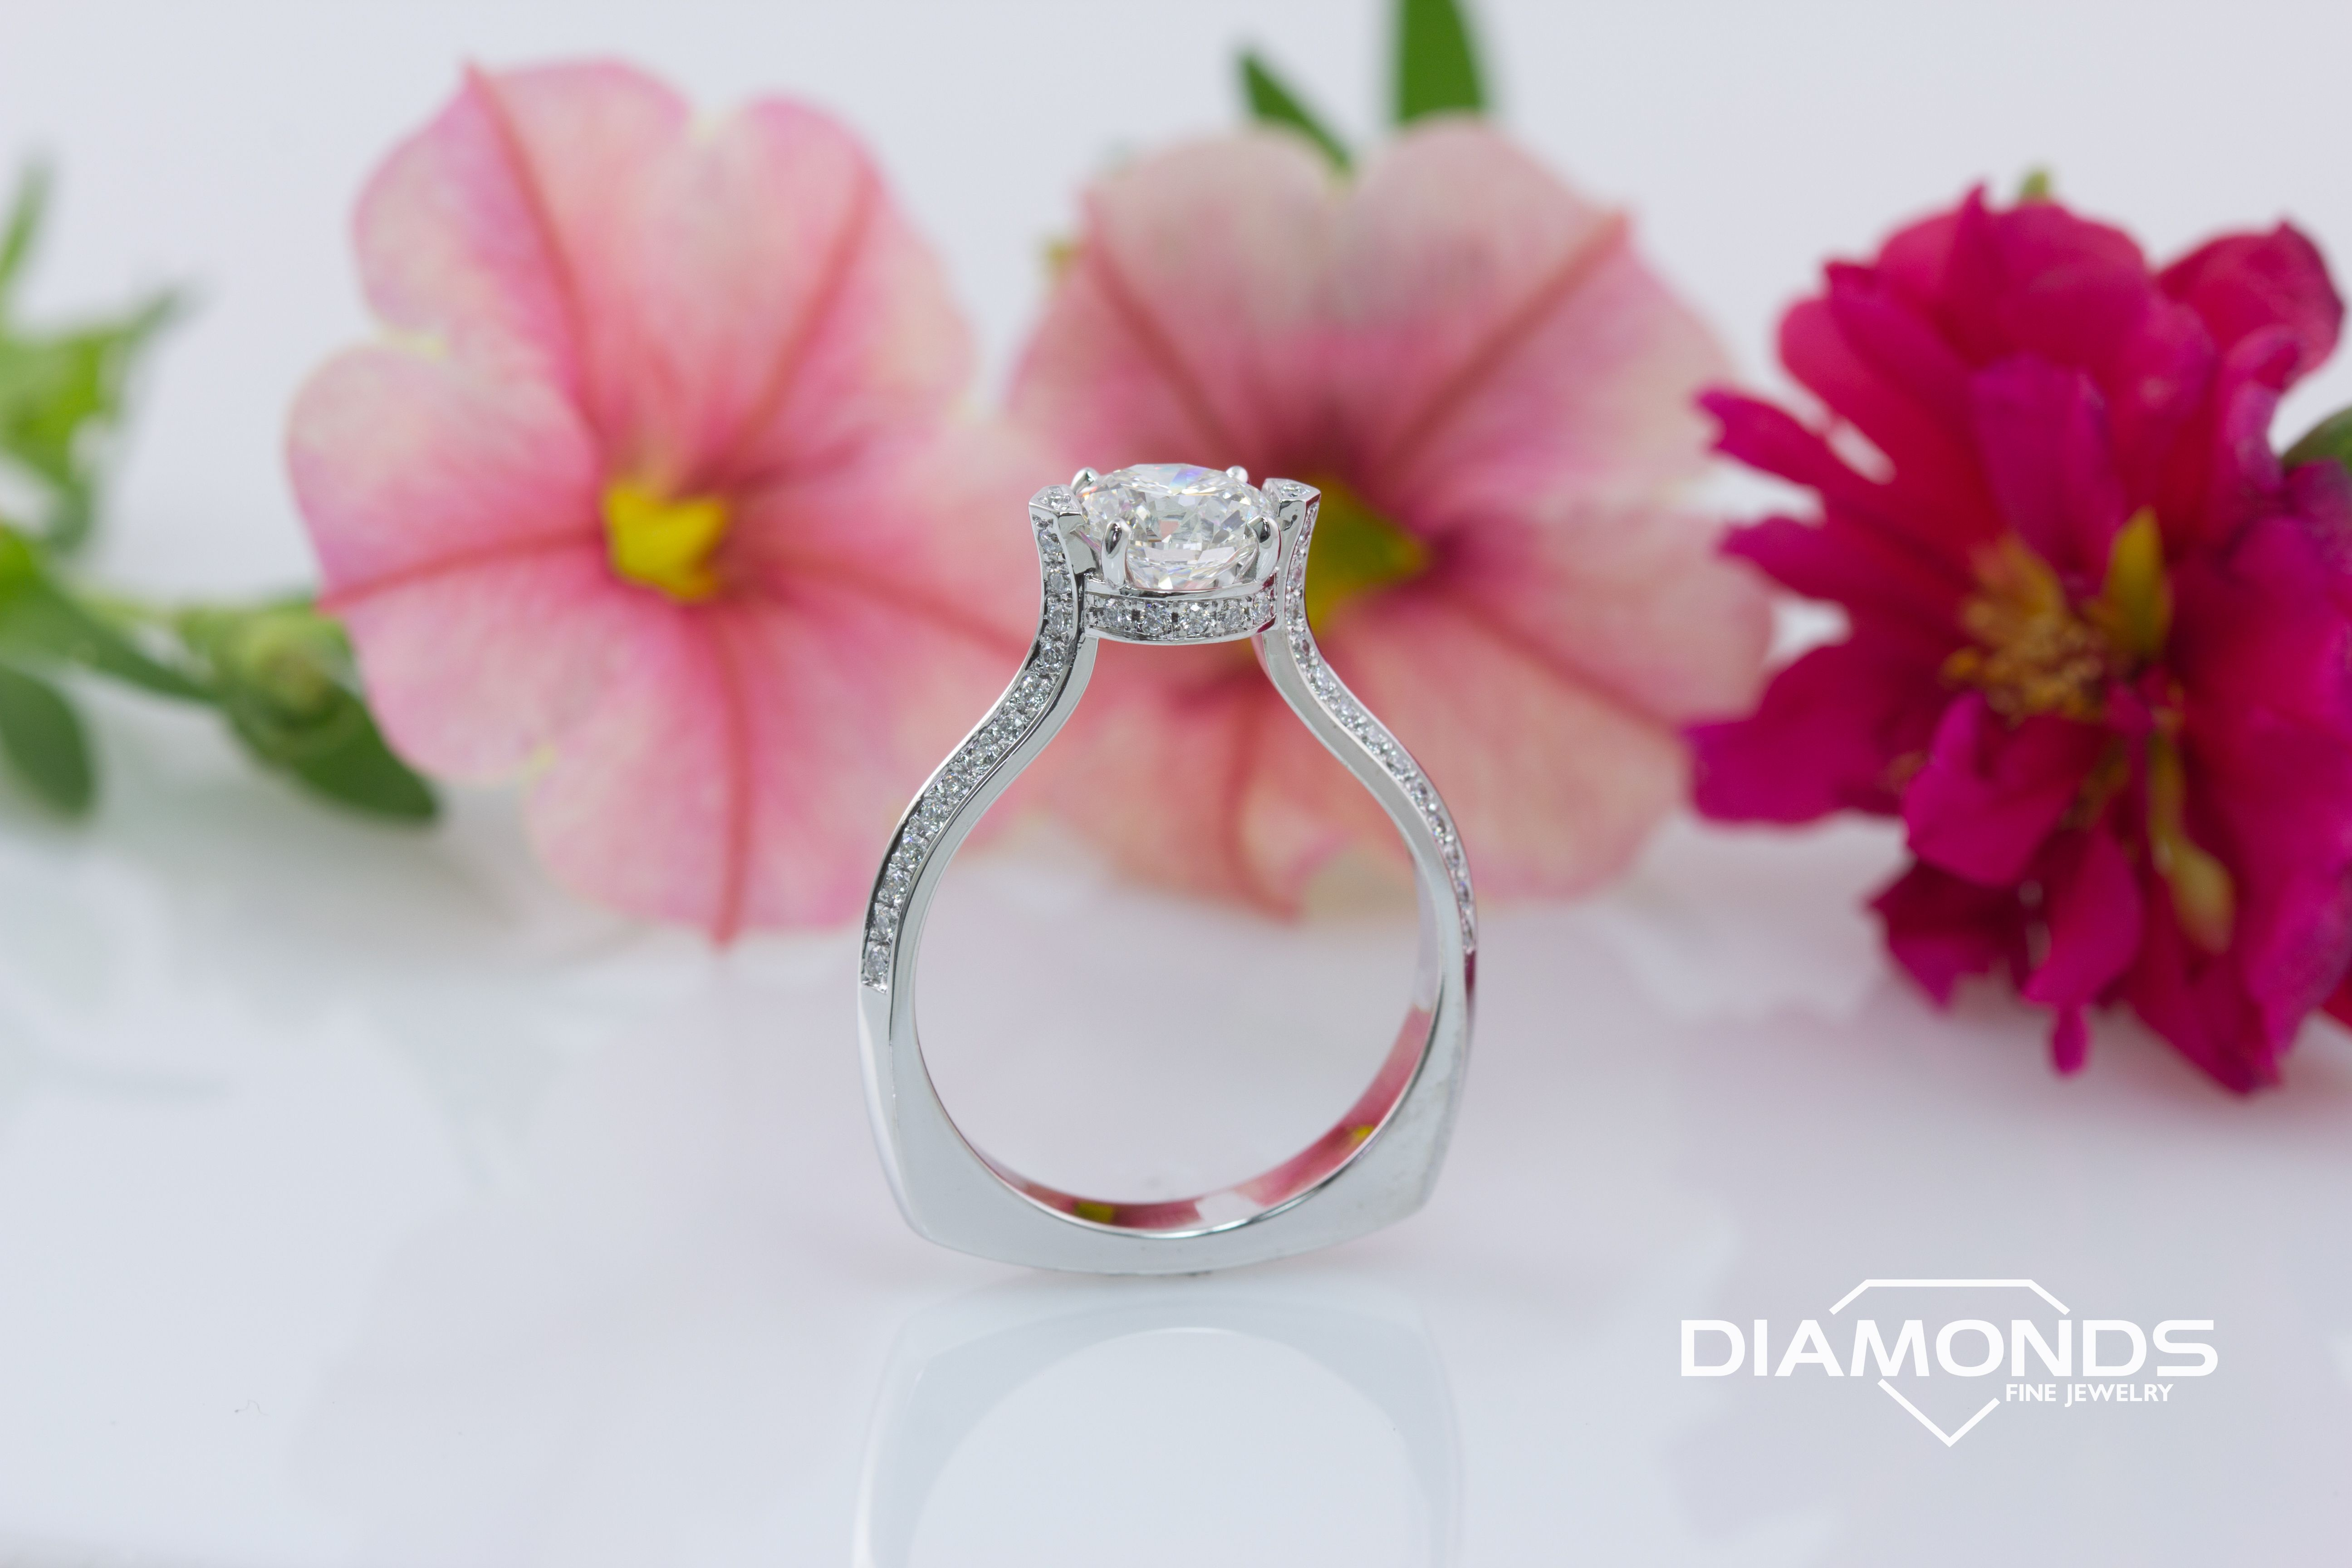 Pin by Diamonds Fine Jewelry on UNIQUE ENGAGEMENT RINGS | Pinterest